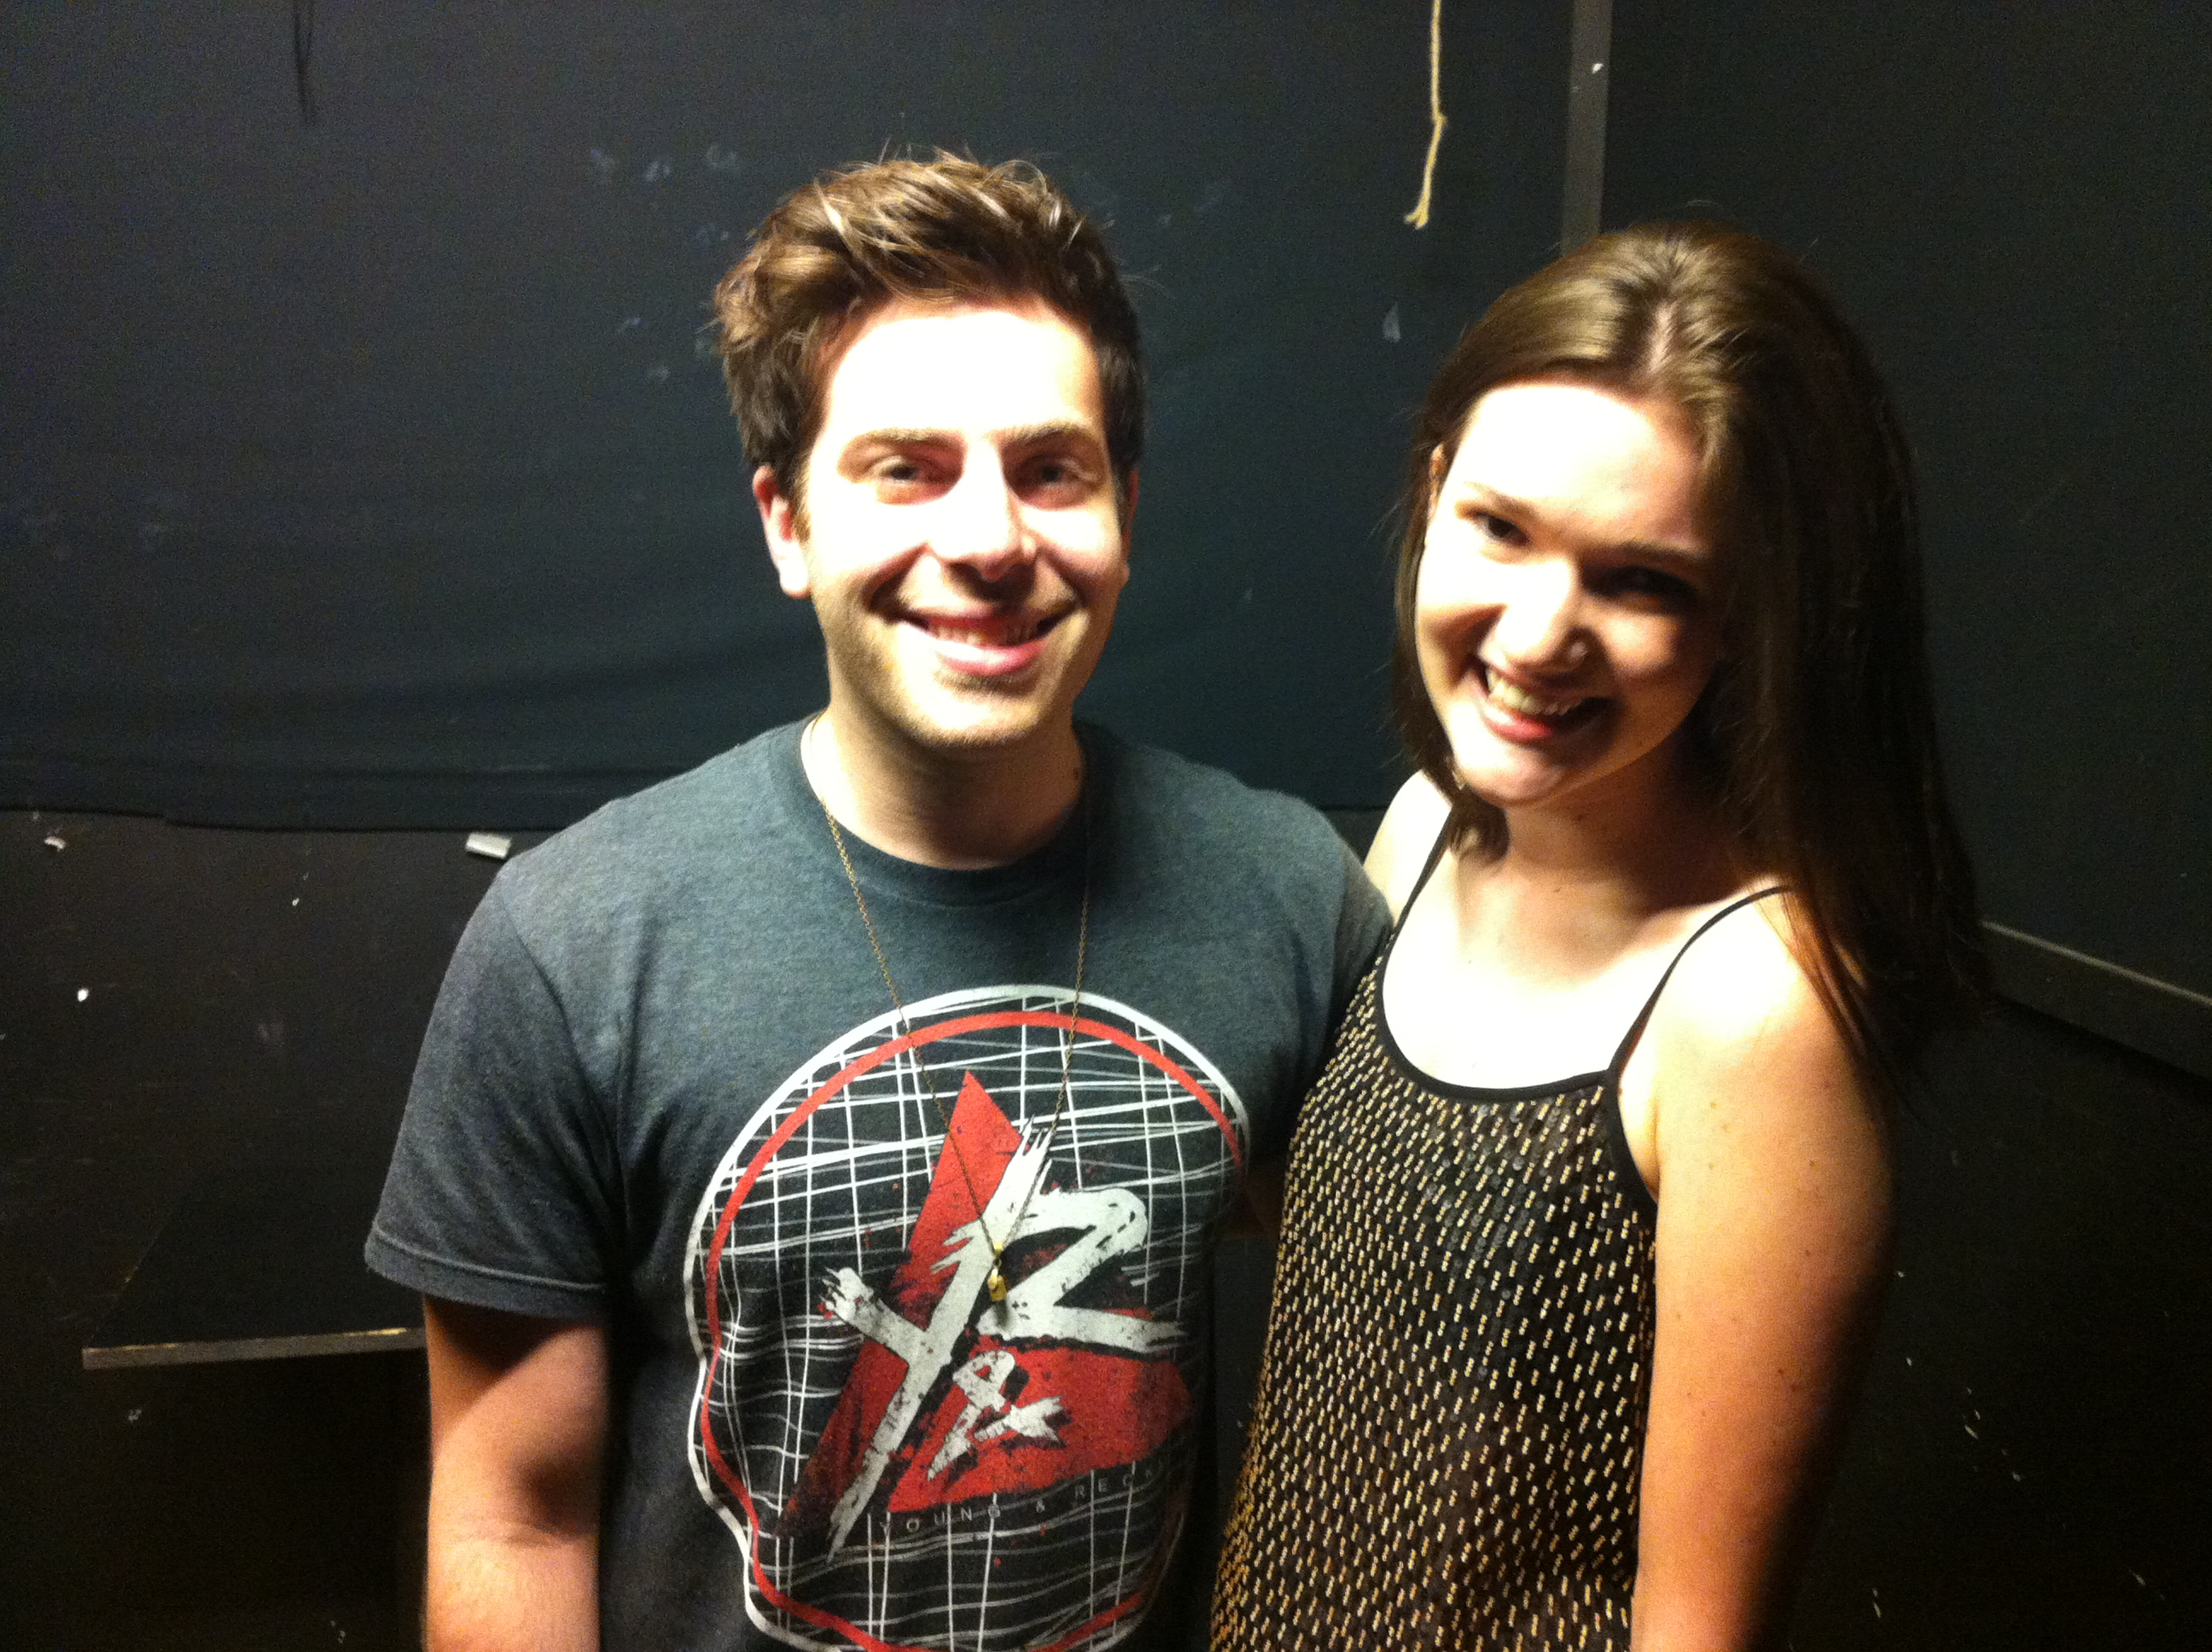 Hoodie allen lauren in lilly hoodie and me this picture is my new cover photo on facebook he was so sweet down to earth and friendly you could tell that he was exhausted and tired m4hsunfo